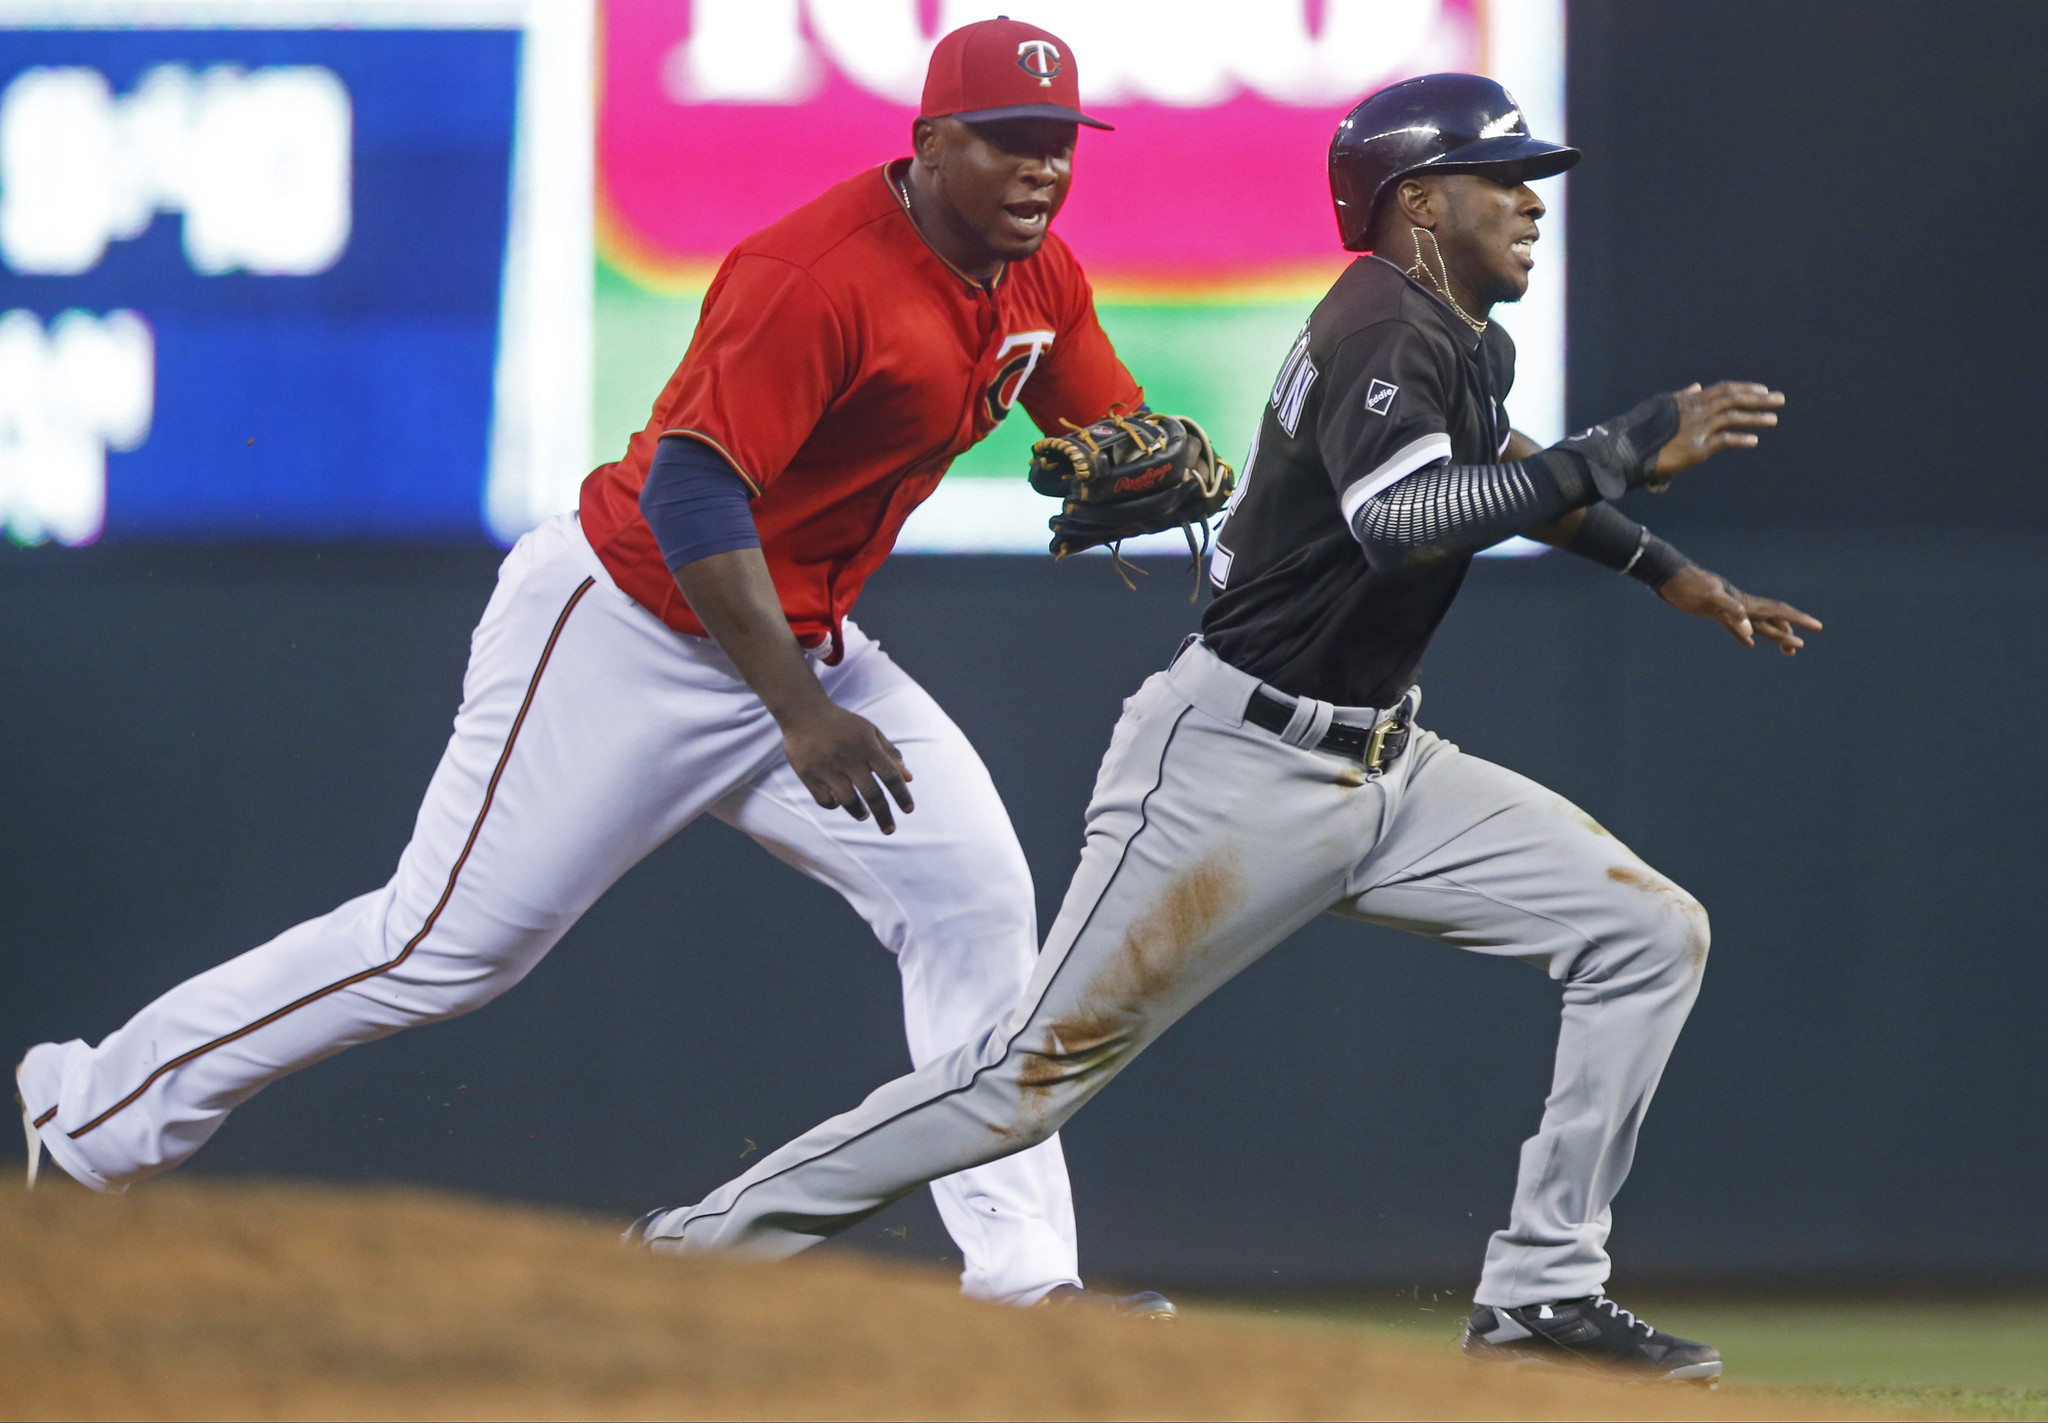 Ct-white-sox-vs-twins-photos-spt-20160729